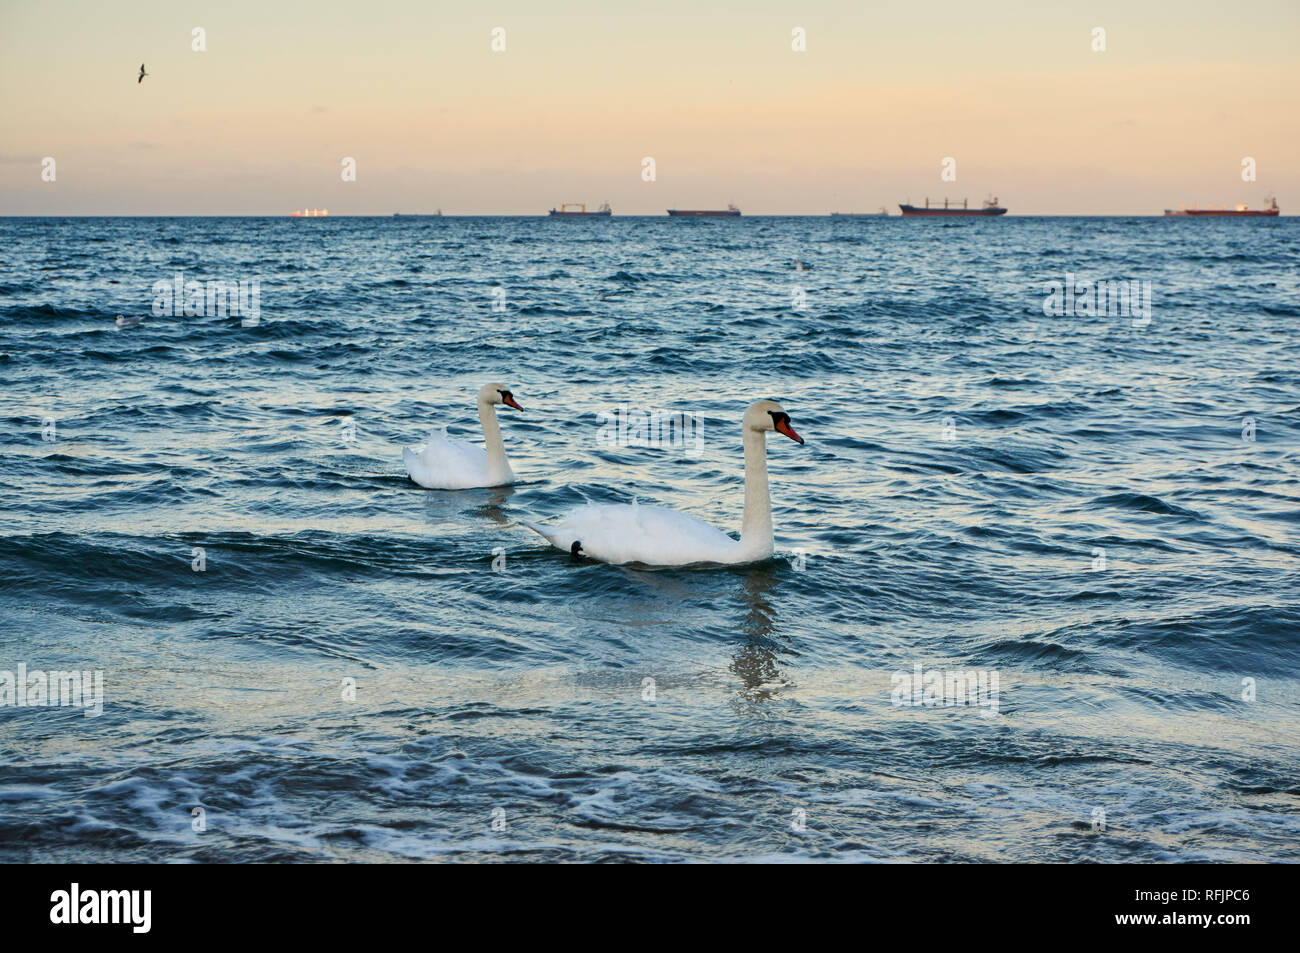 Two swans in a warm evening light swimming in the Baltic sea Stock Photo